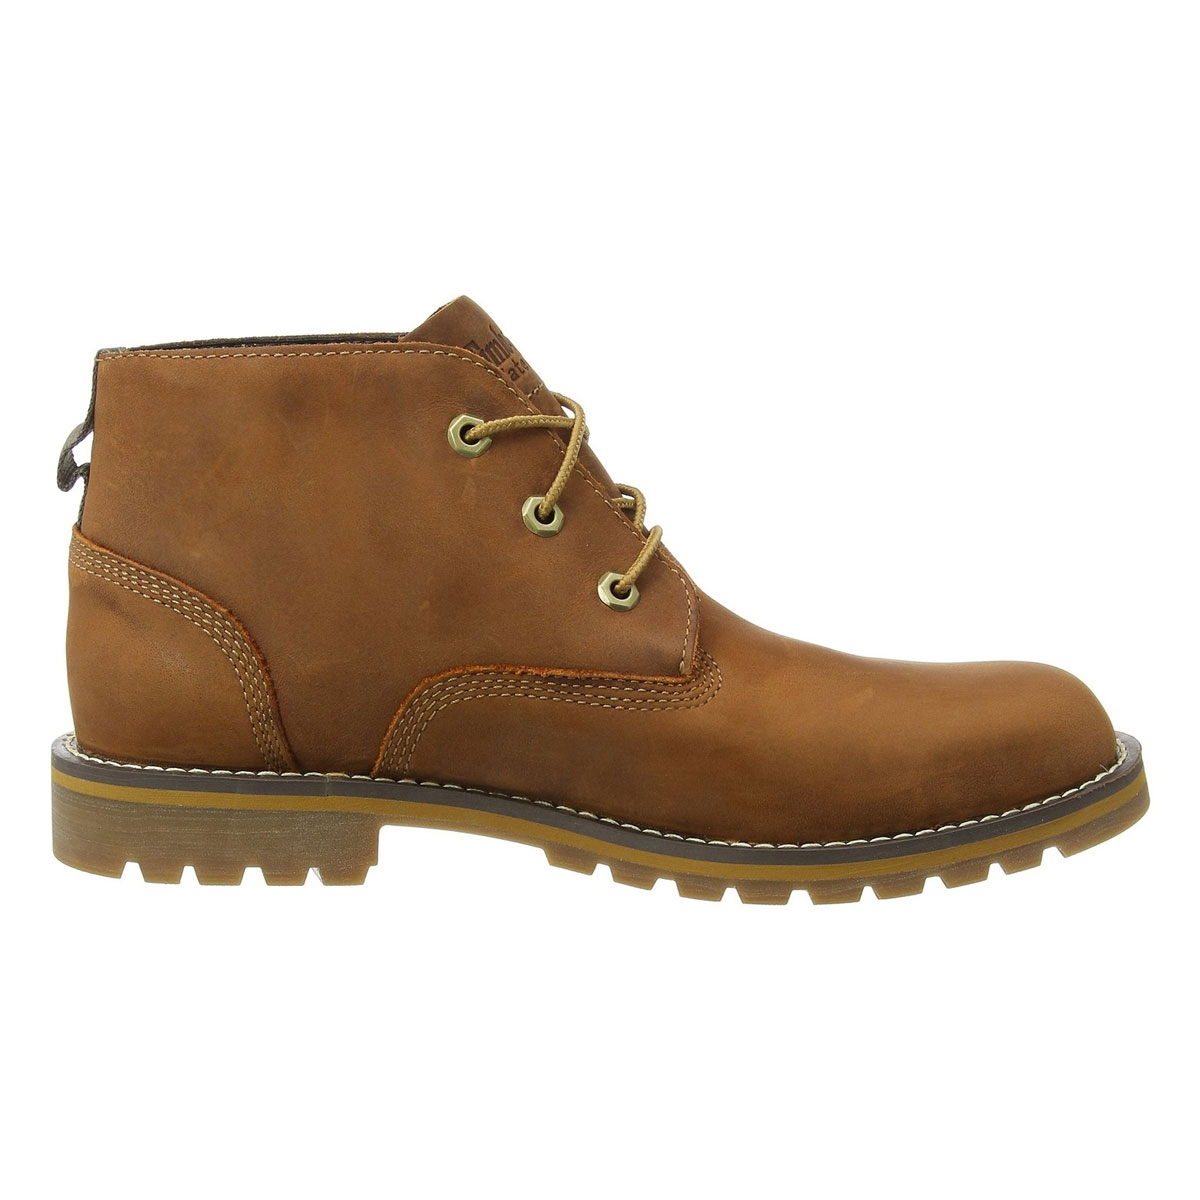 Timberland Earthkeepers Larchmont Waterproof Chukka Boots (Men's ...